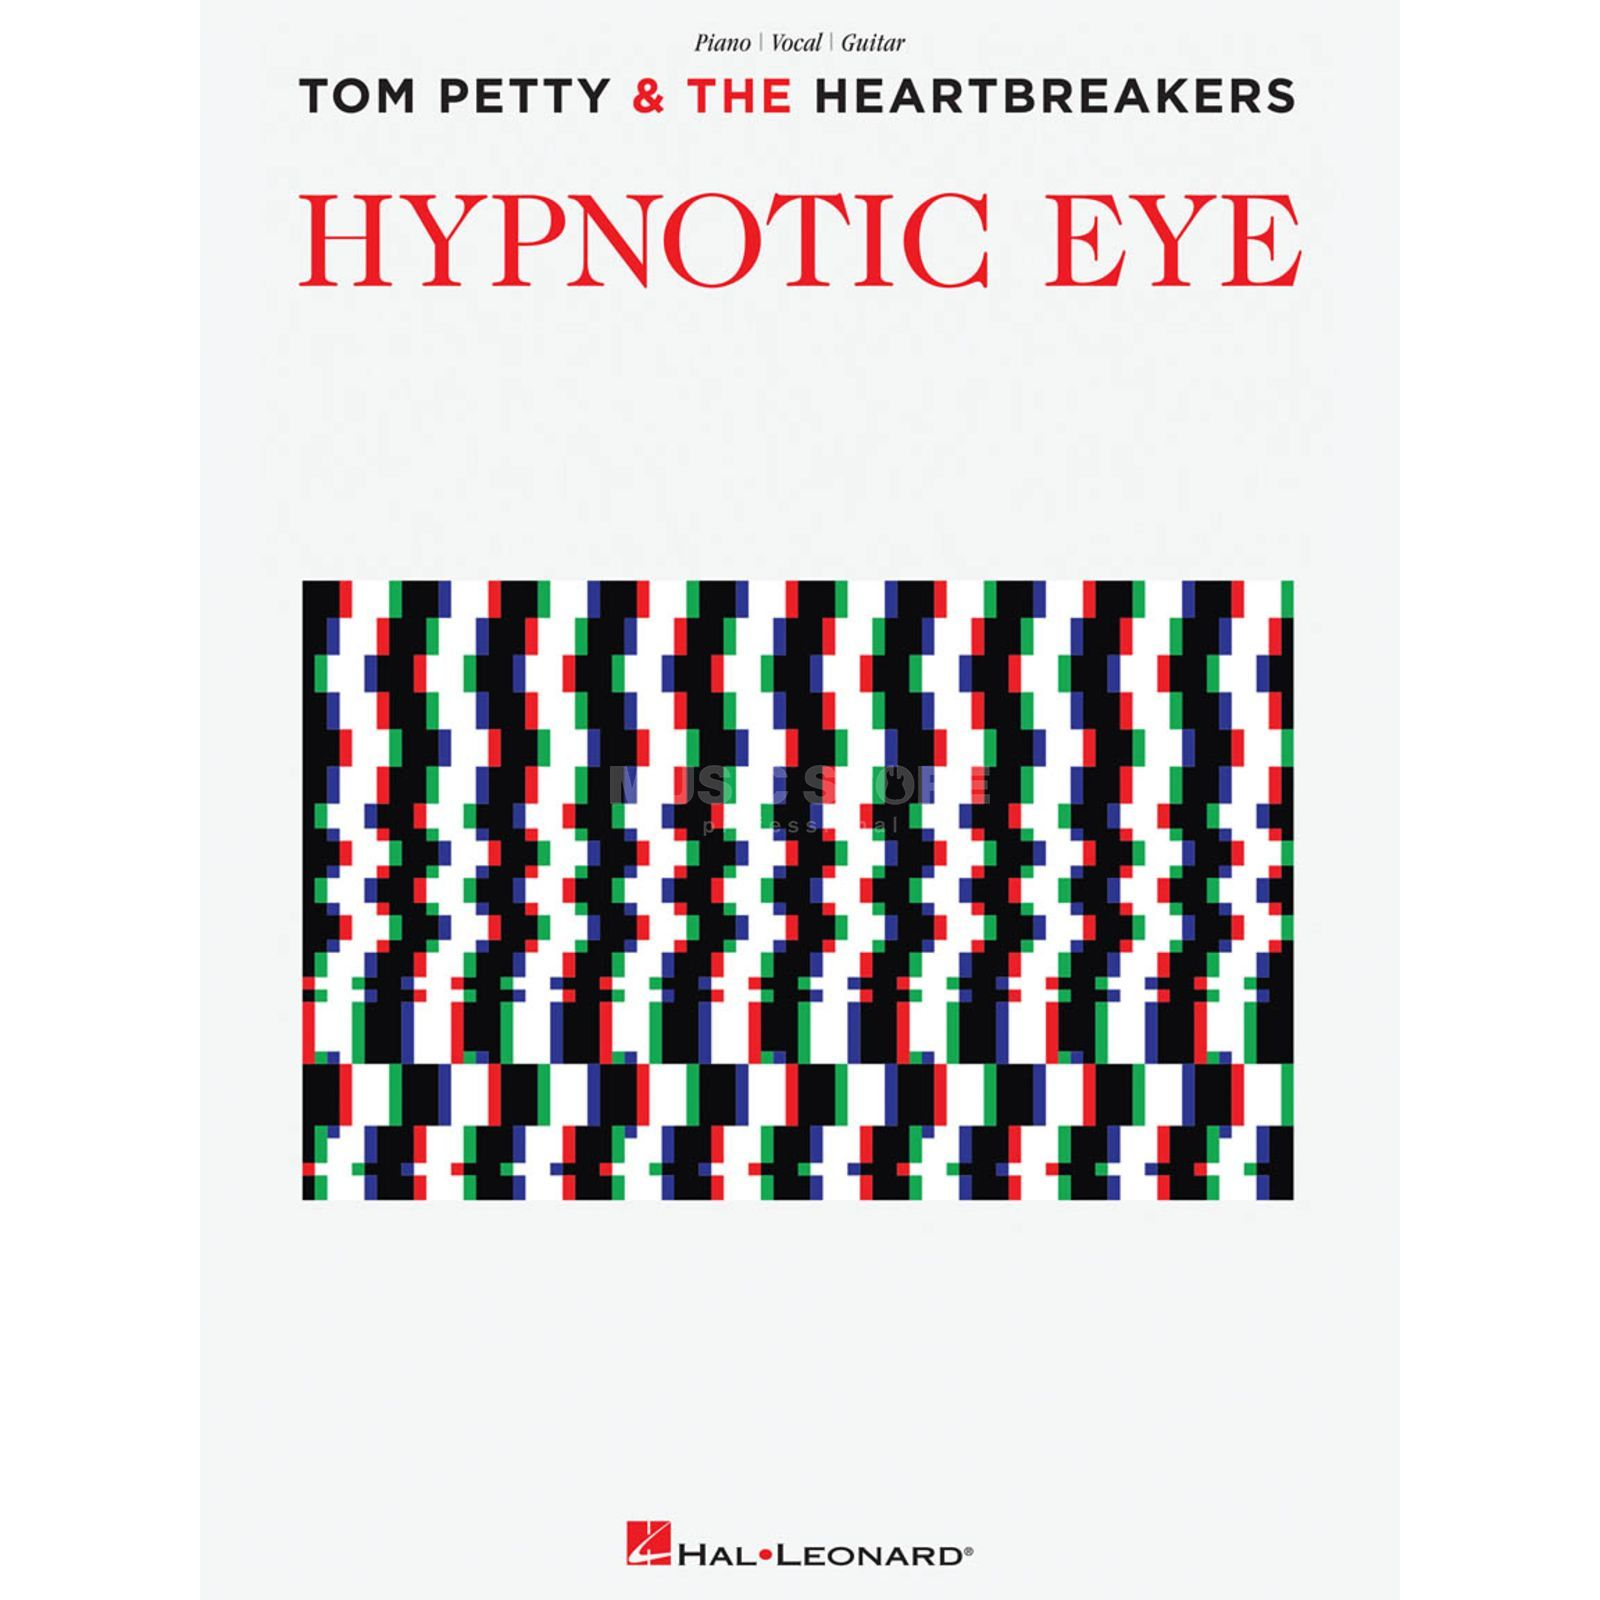 Hal Leonard Tom Petty And The Heartbreakers: Hypnotic Eye Produktbild